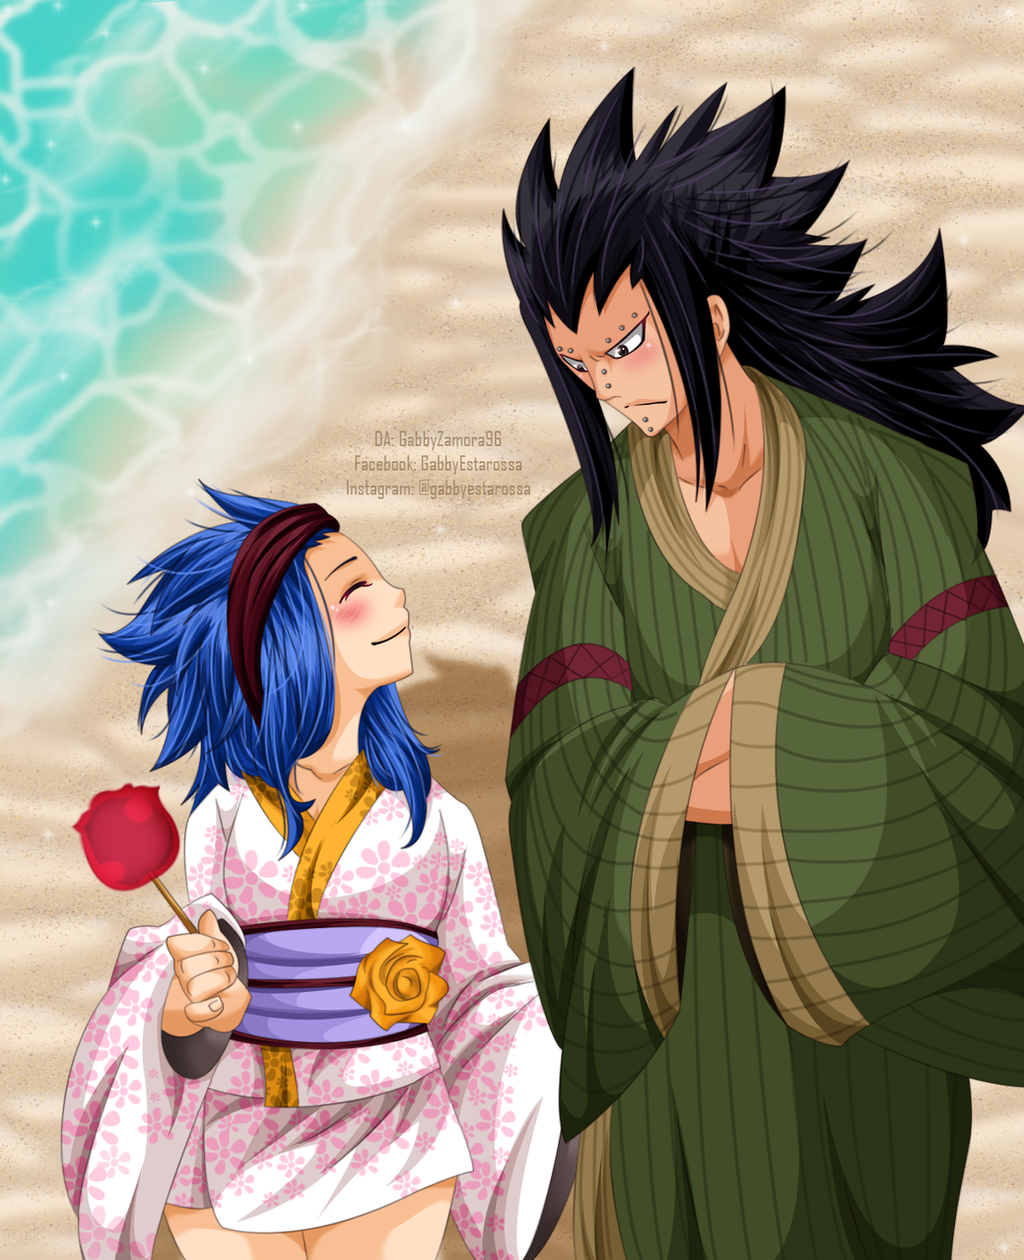 Gajeel And Levy By GabbyZamora96 On DeviantArt